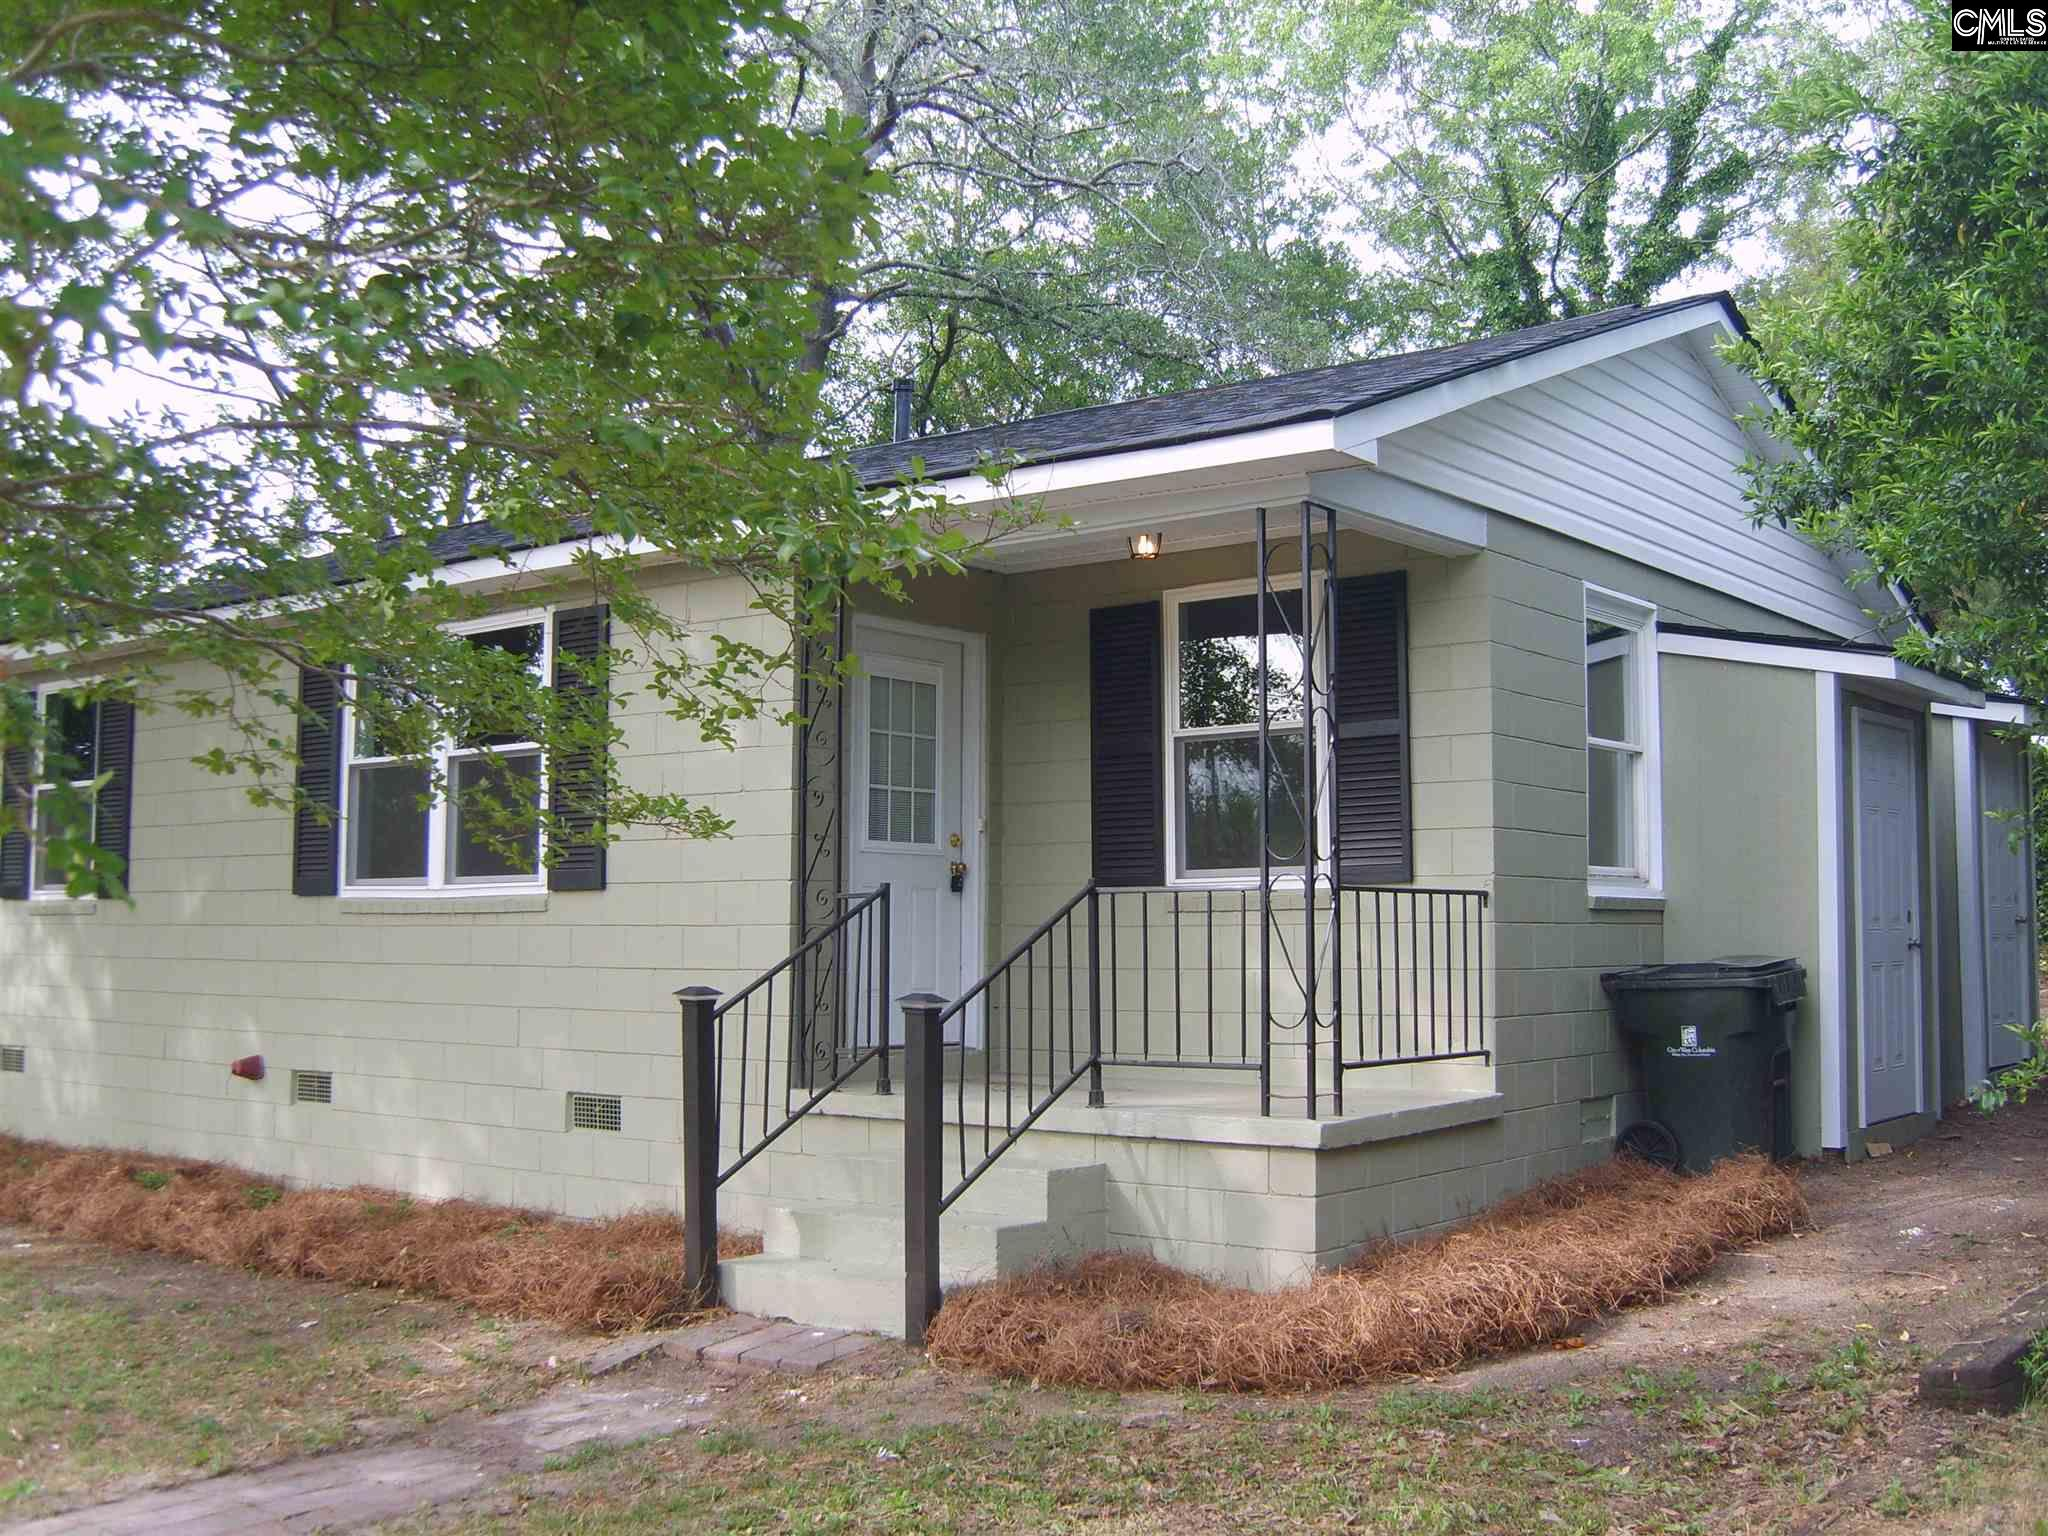 307 Forest West Columbia, SC 29169-6803